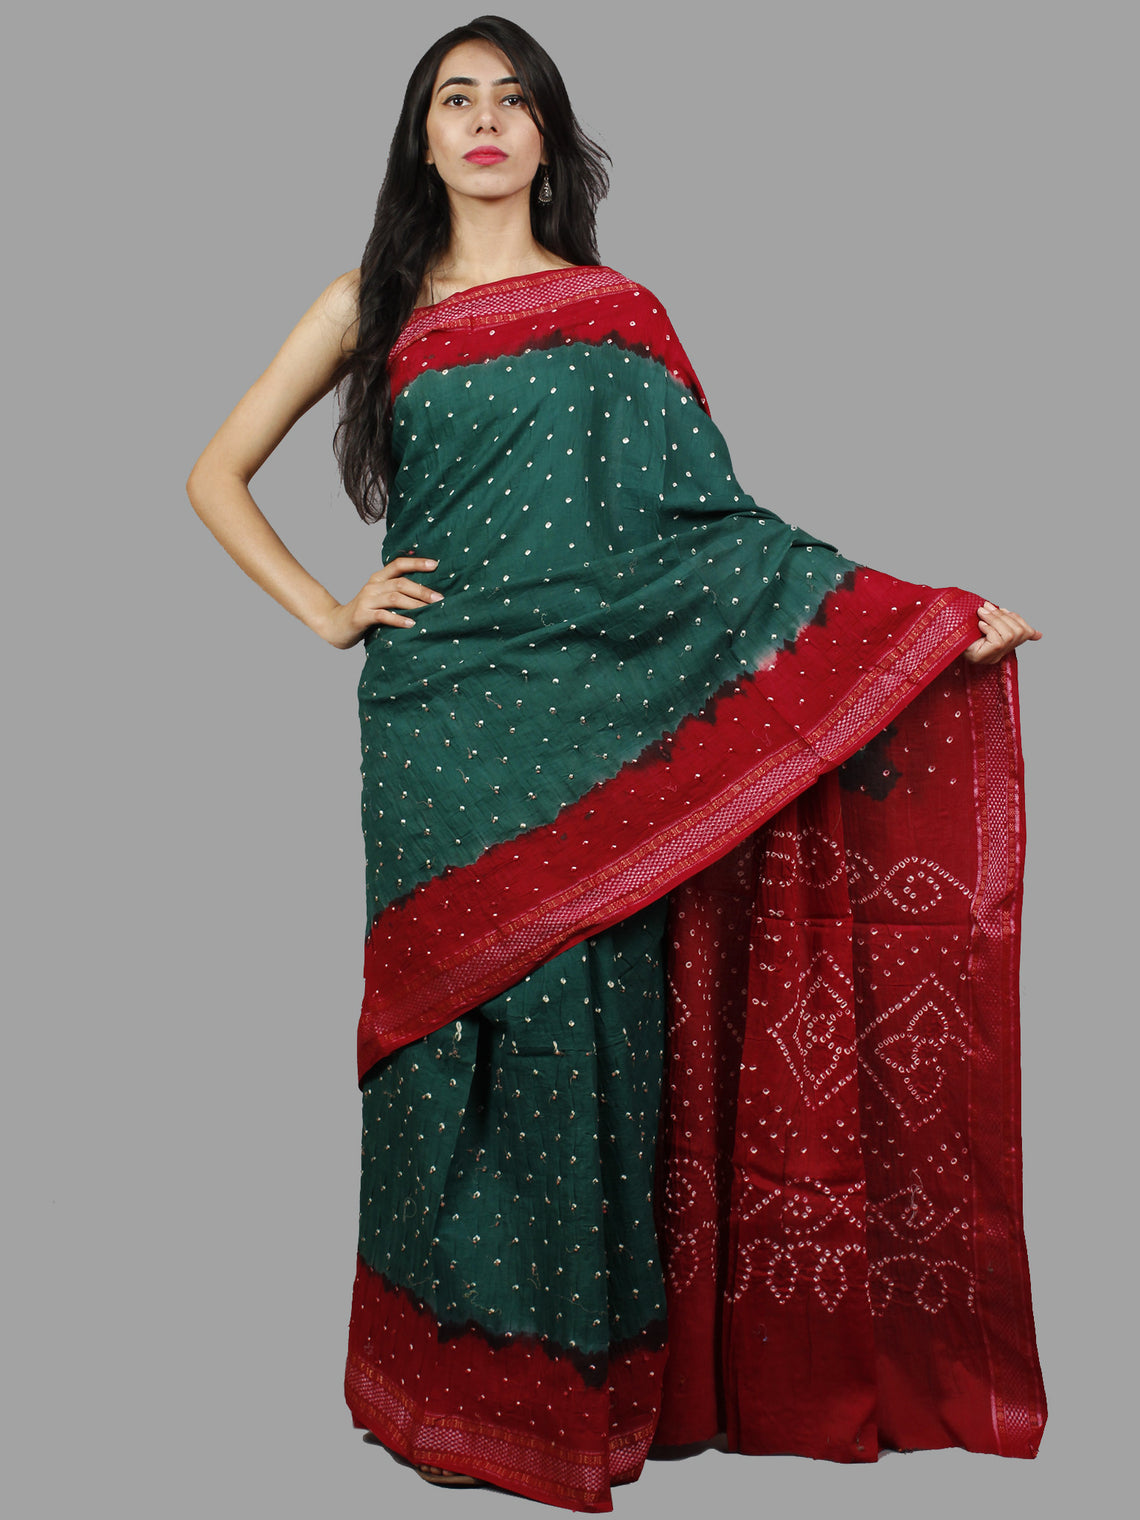 Peacock Green Red Ivory Hand Tie & Dye Bandhej Glace Cotton Saree With Resham Border - S031701404